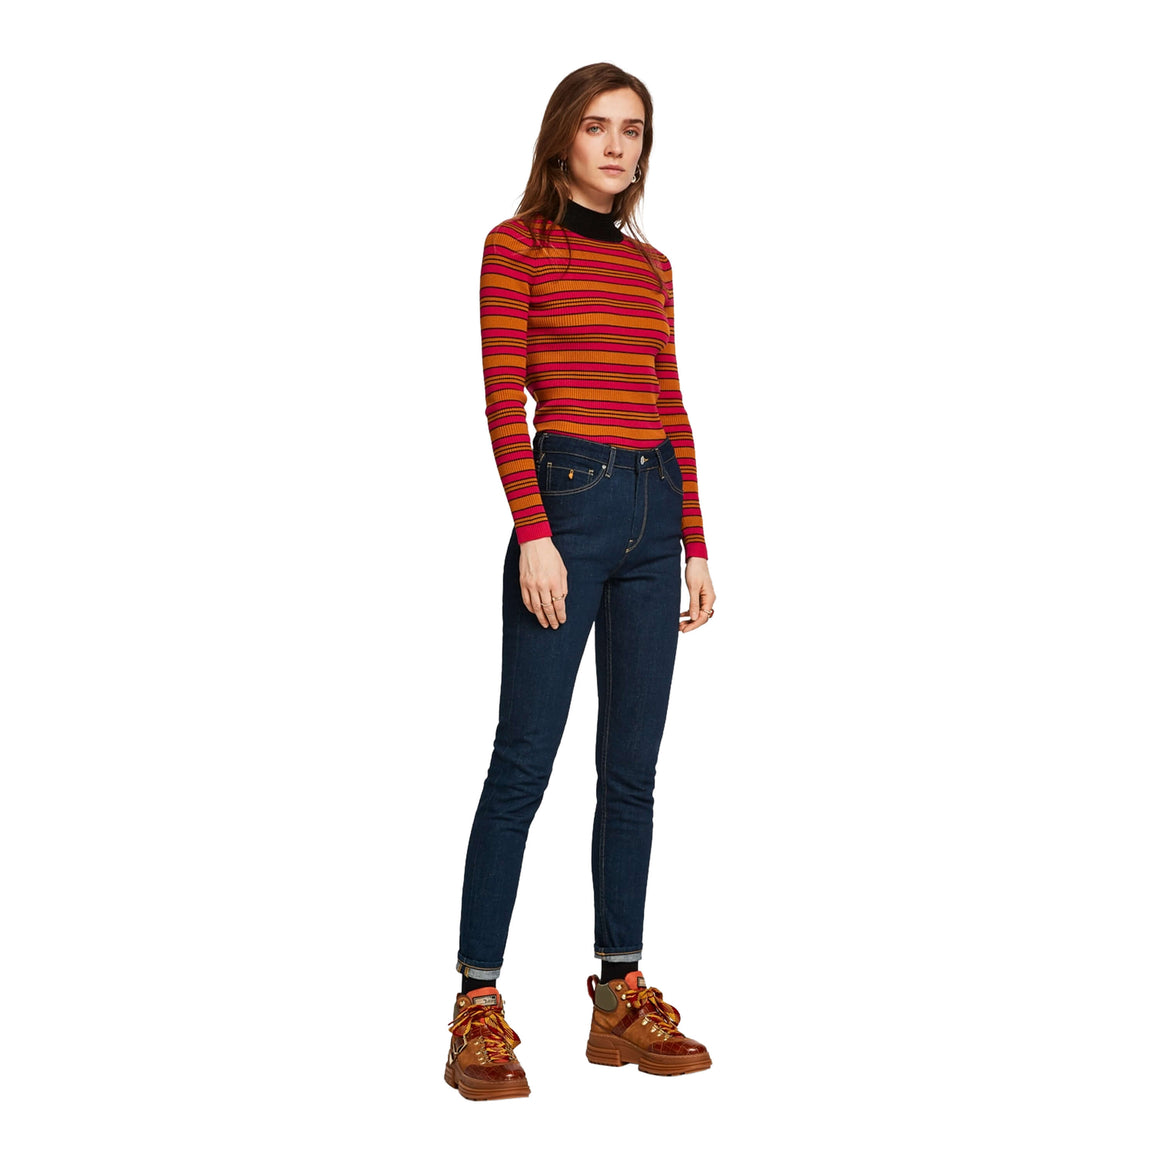 Rib Knit Pullover for Women in Orange and Pink